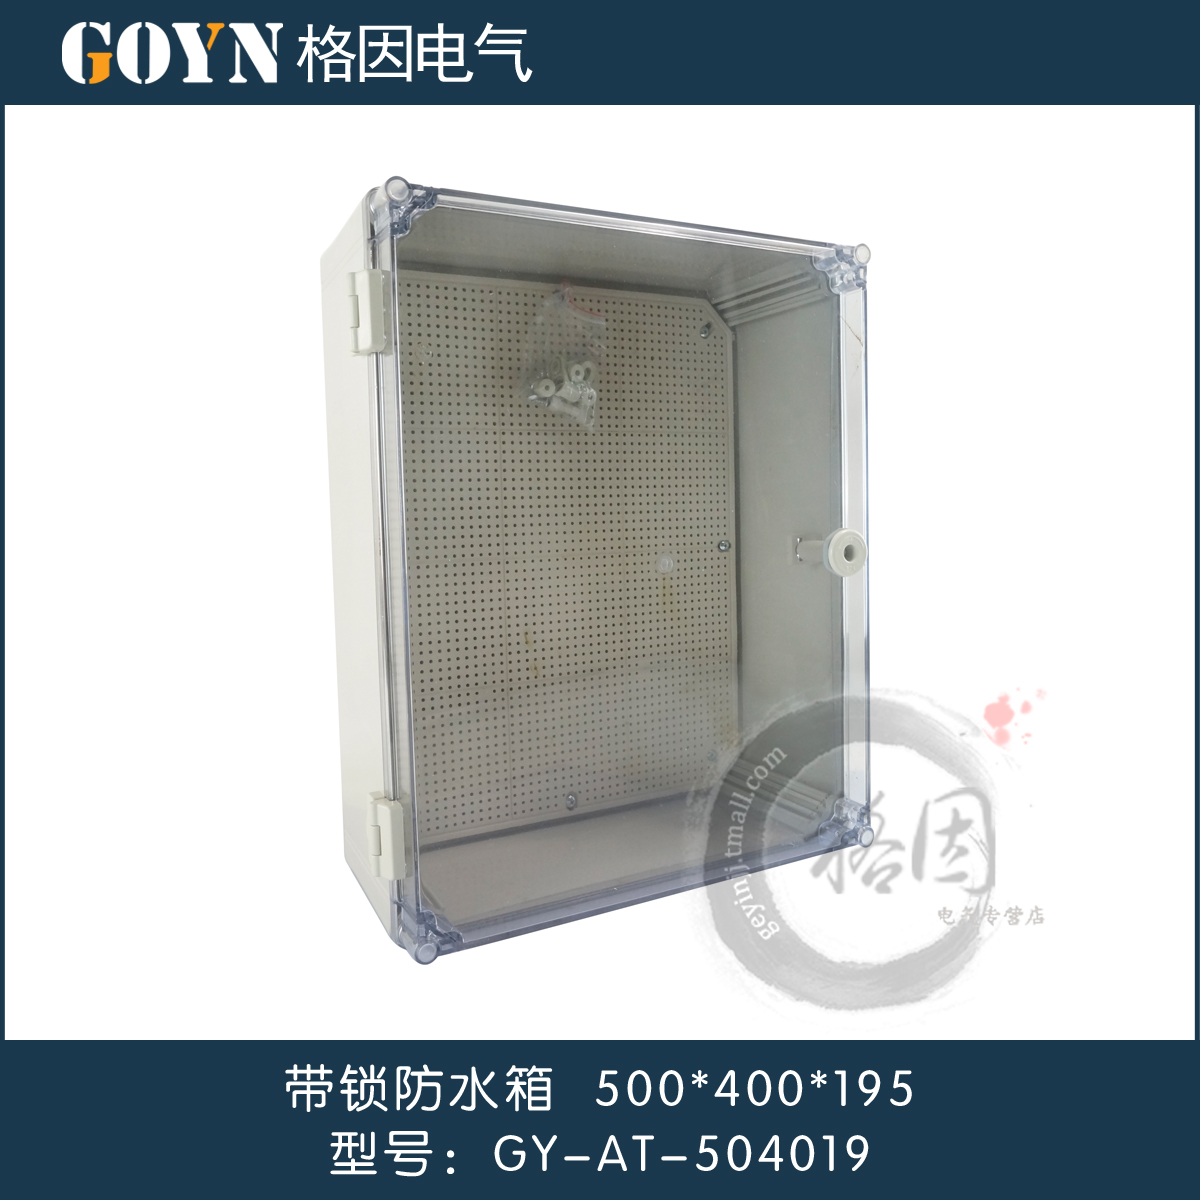 Waterproof box 500*400*195 transparent plastic cover sealed control box foundation box distribution box abs flame retardant